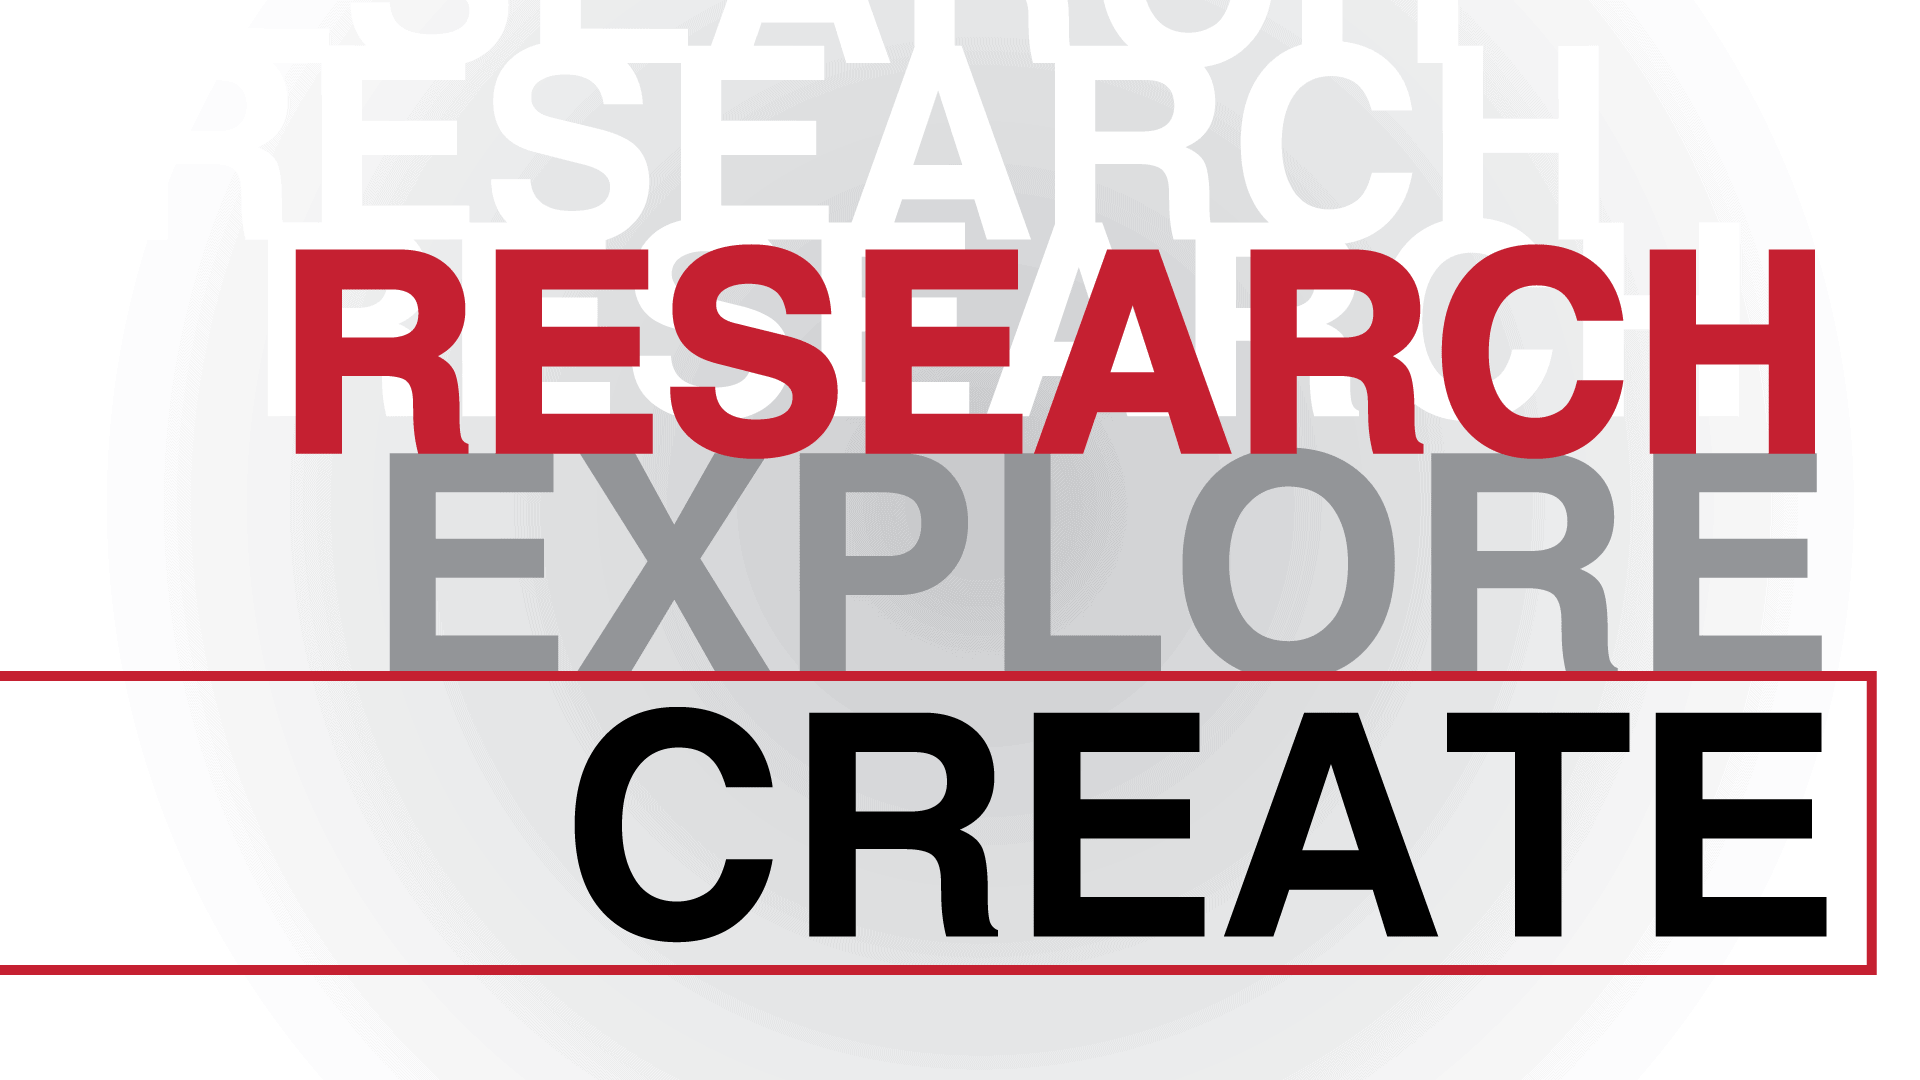 Research, Explore, Create